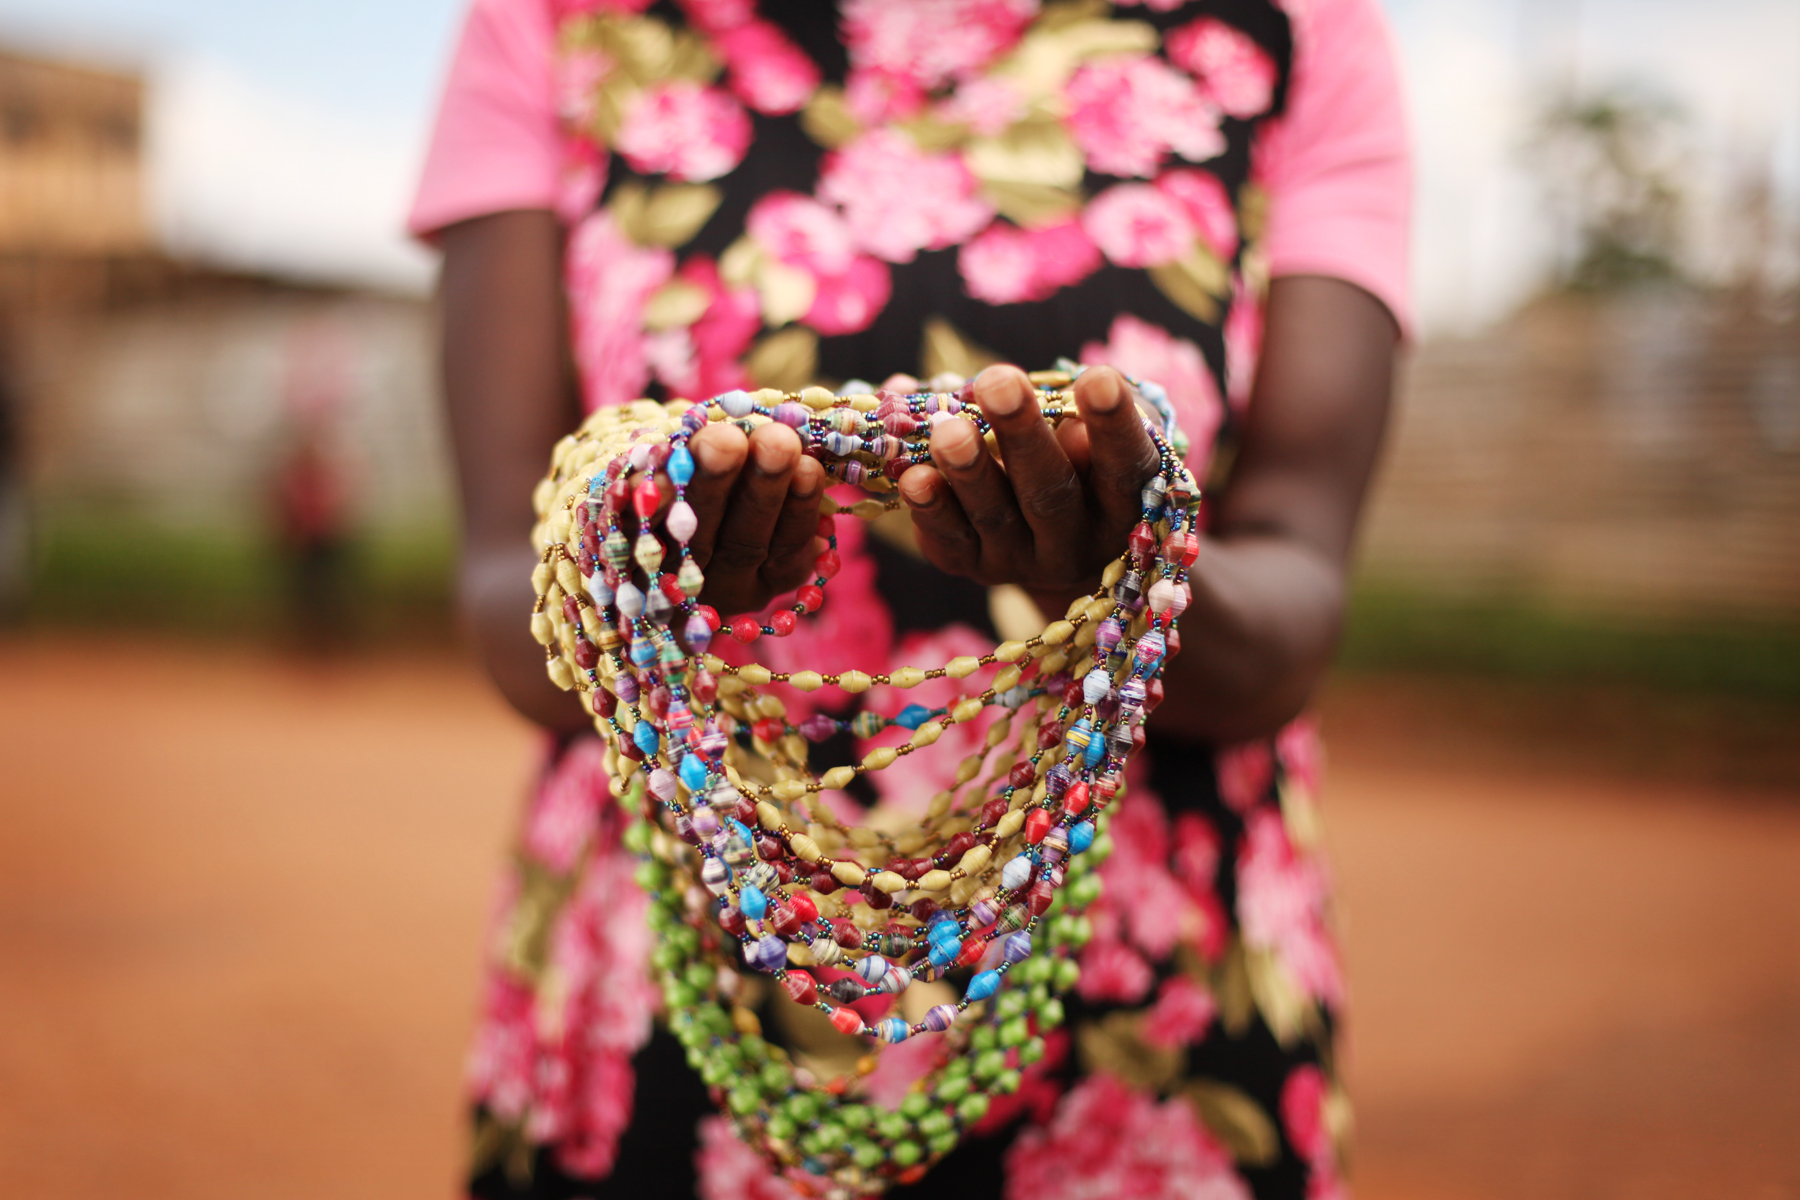 nonprofit-partners-with-uganda-women-bead-makers-